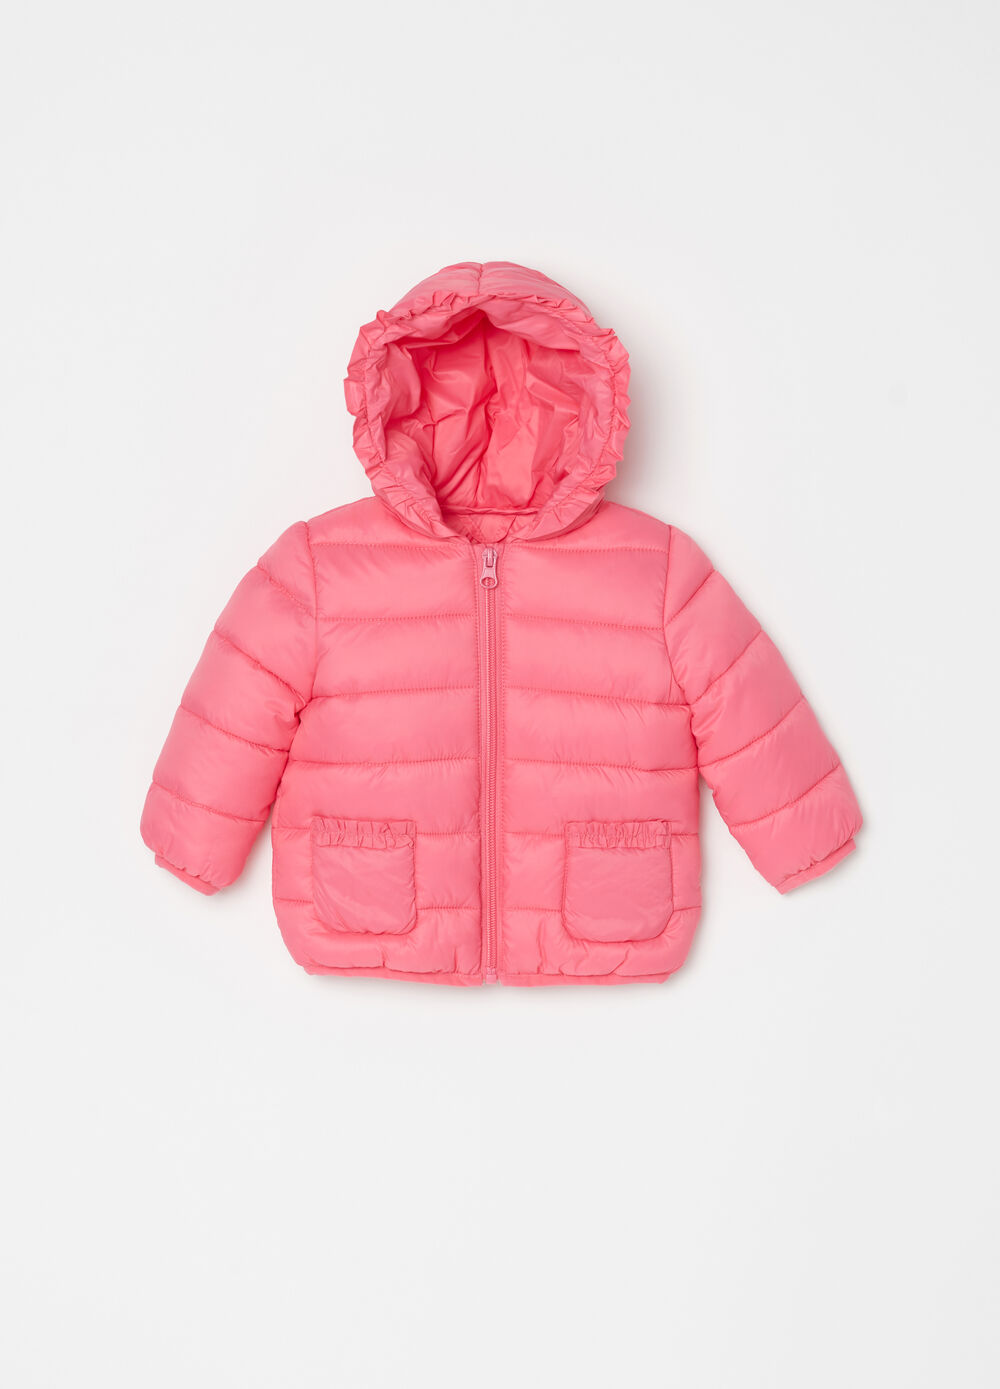 Padded and quilted jacket with flounce